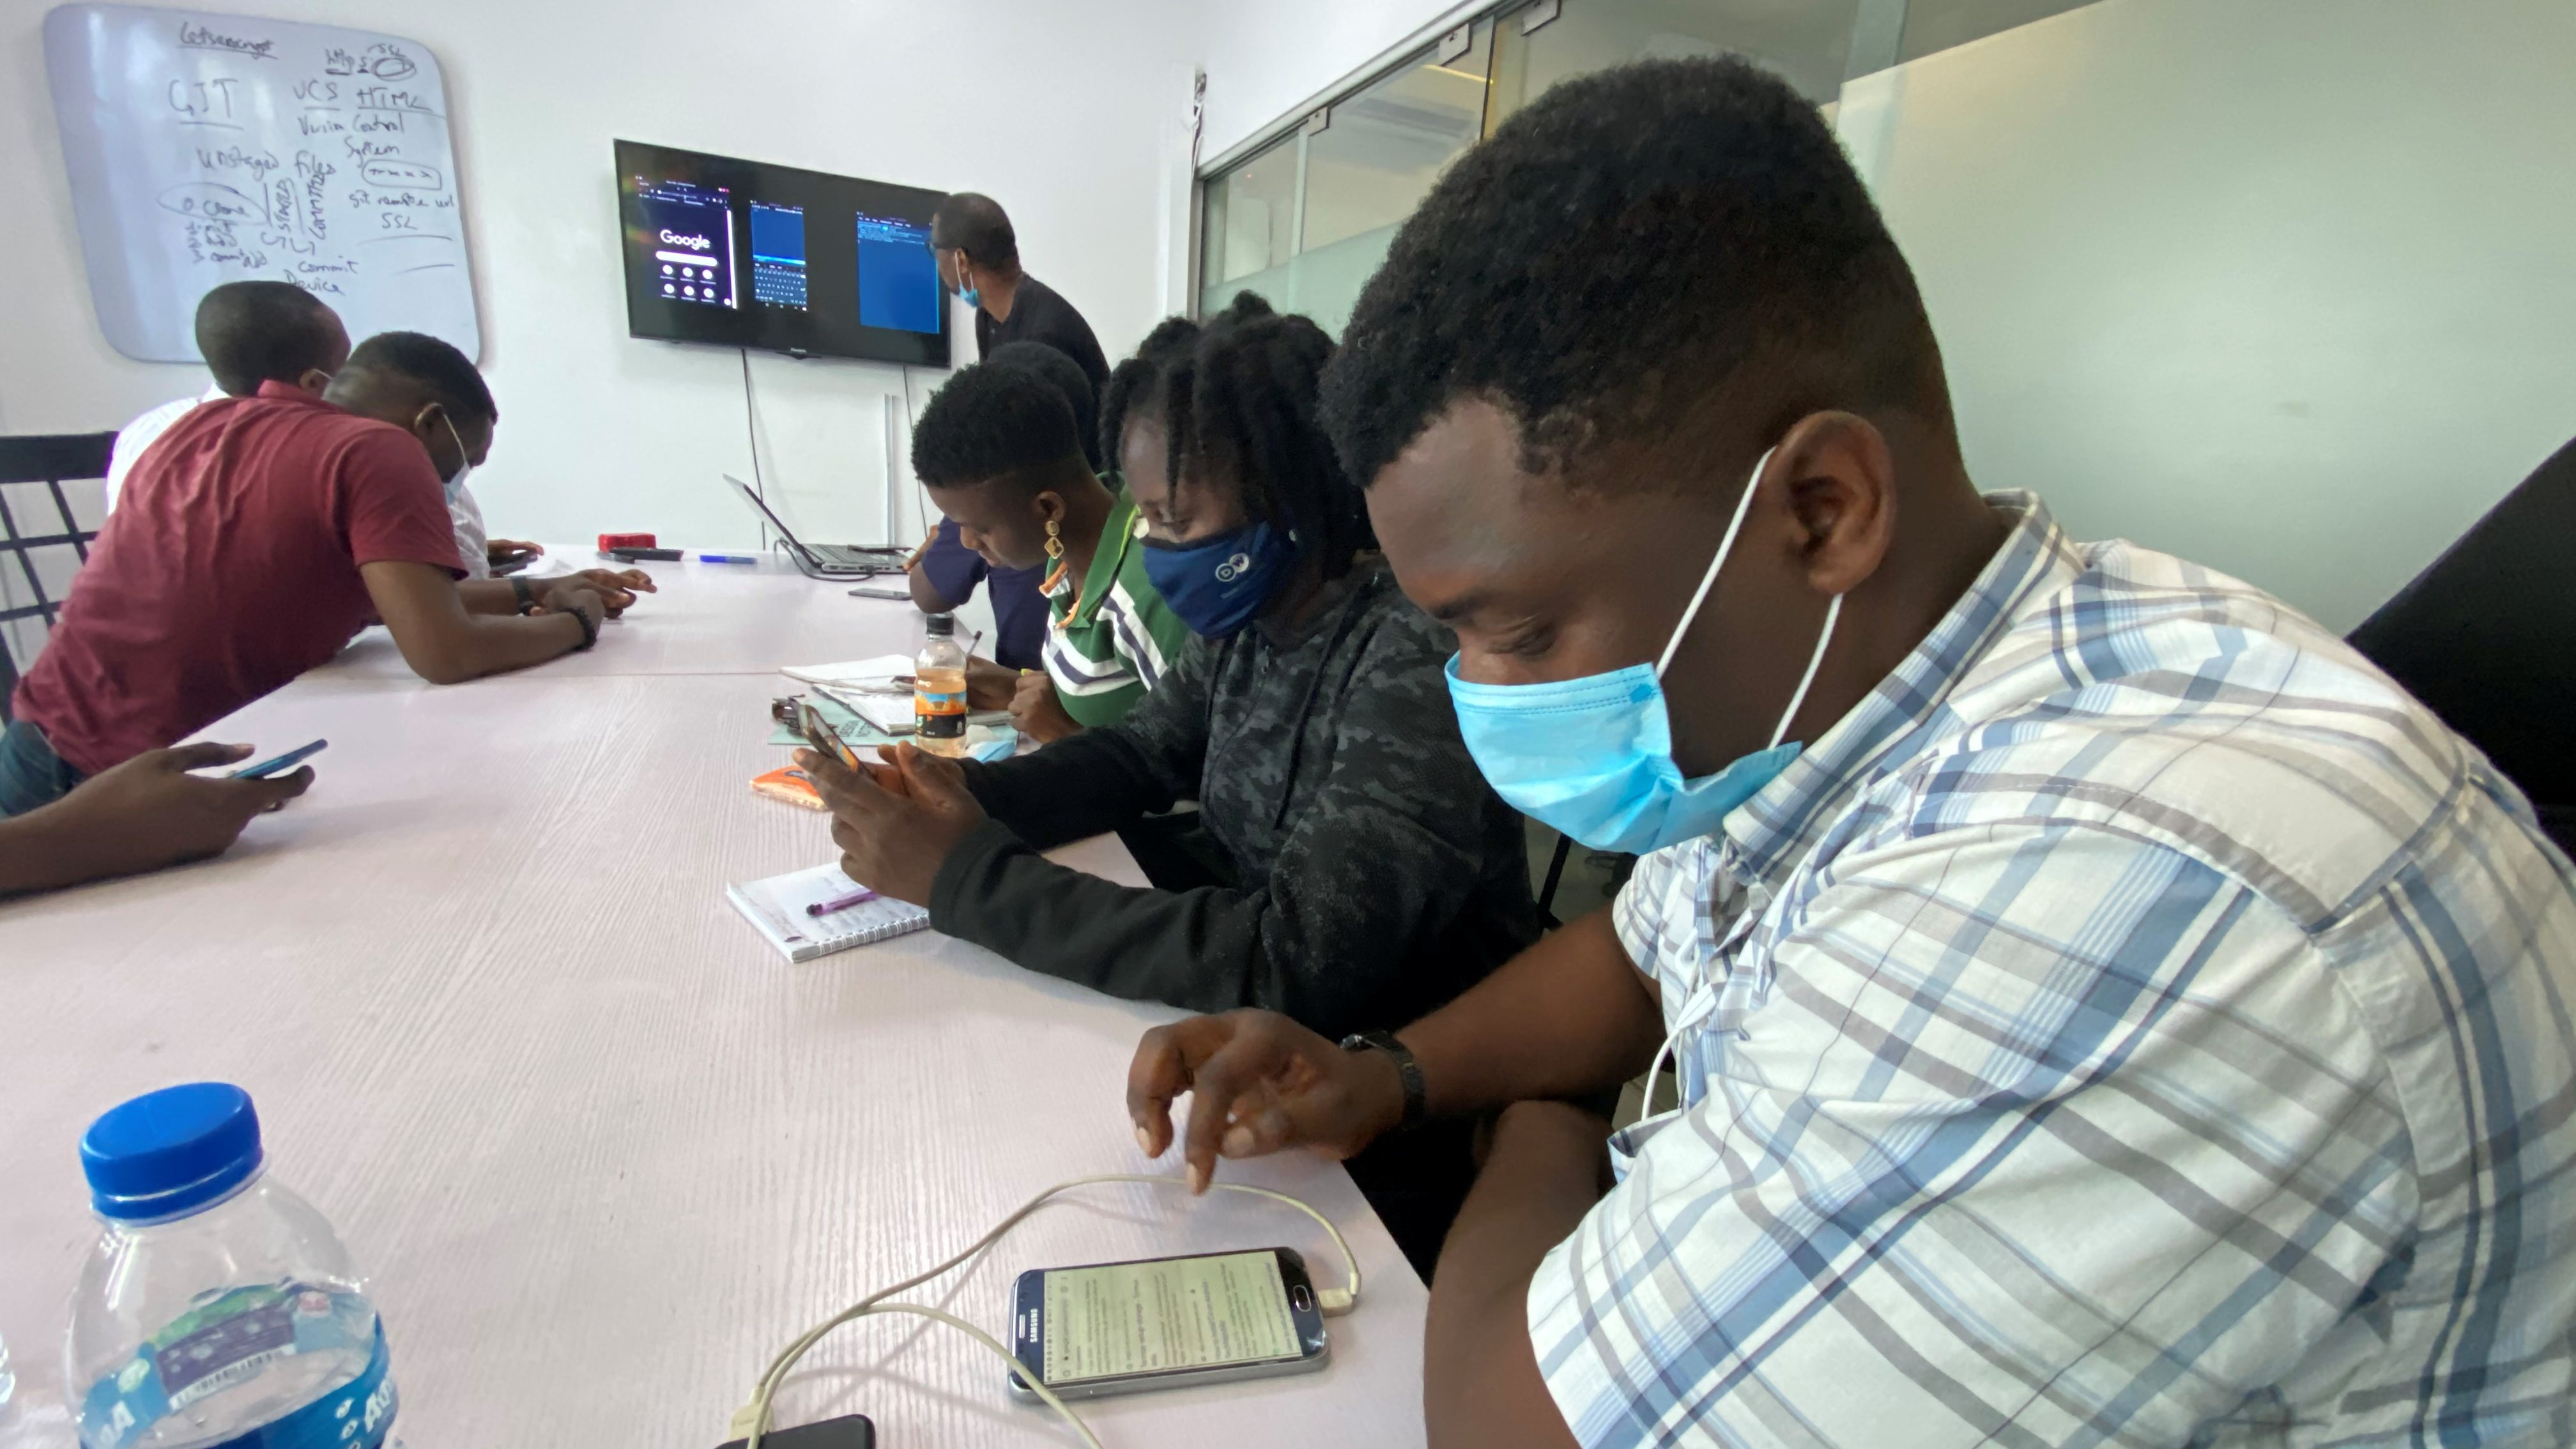 People use their phones during a coding training class in Lagos, Nigeria.